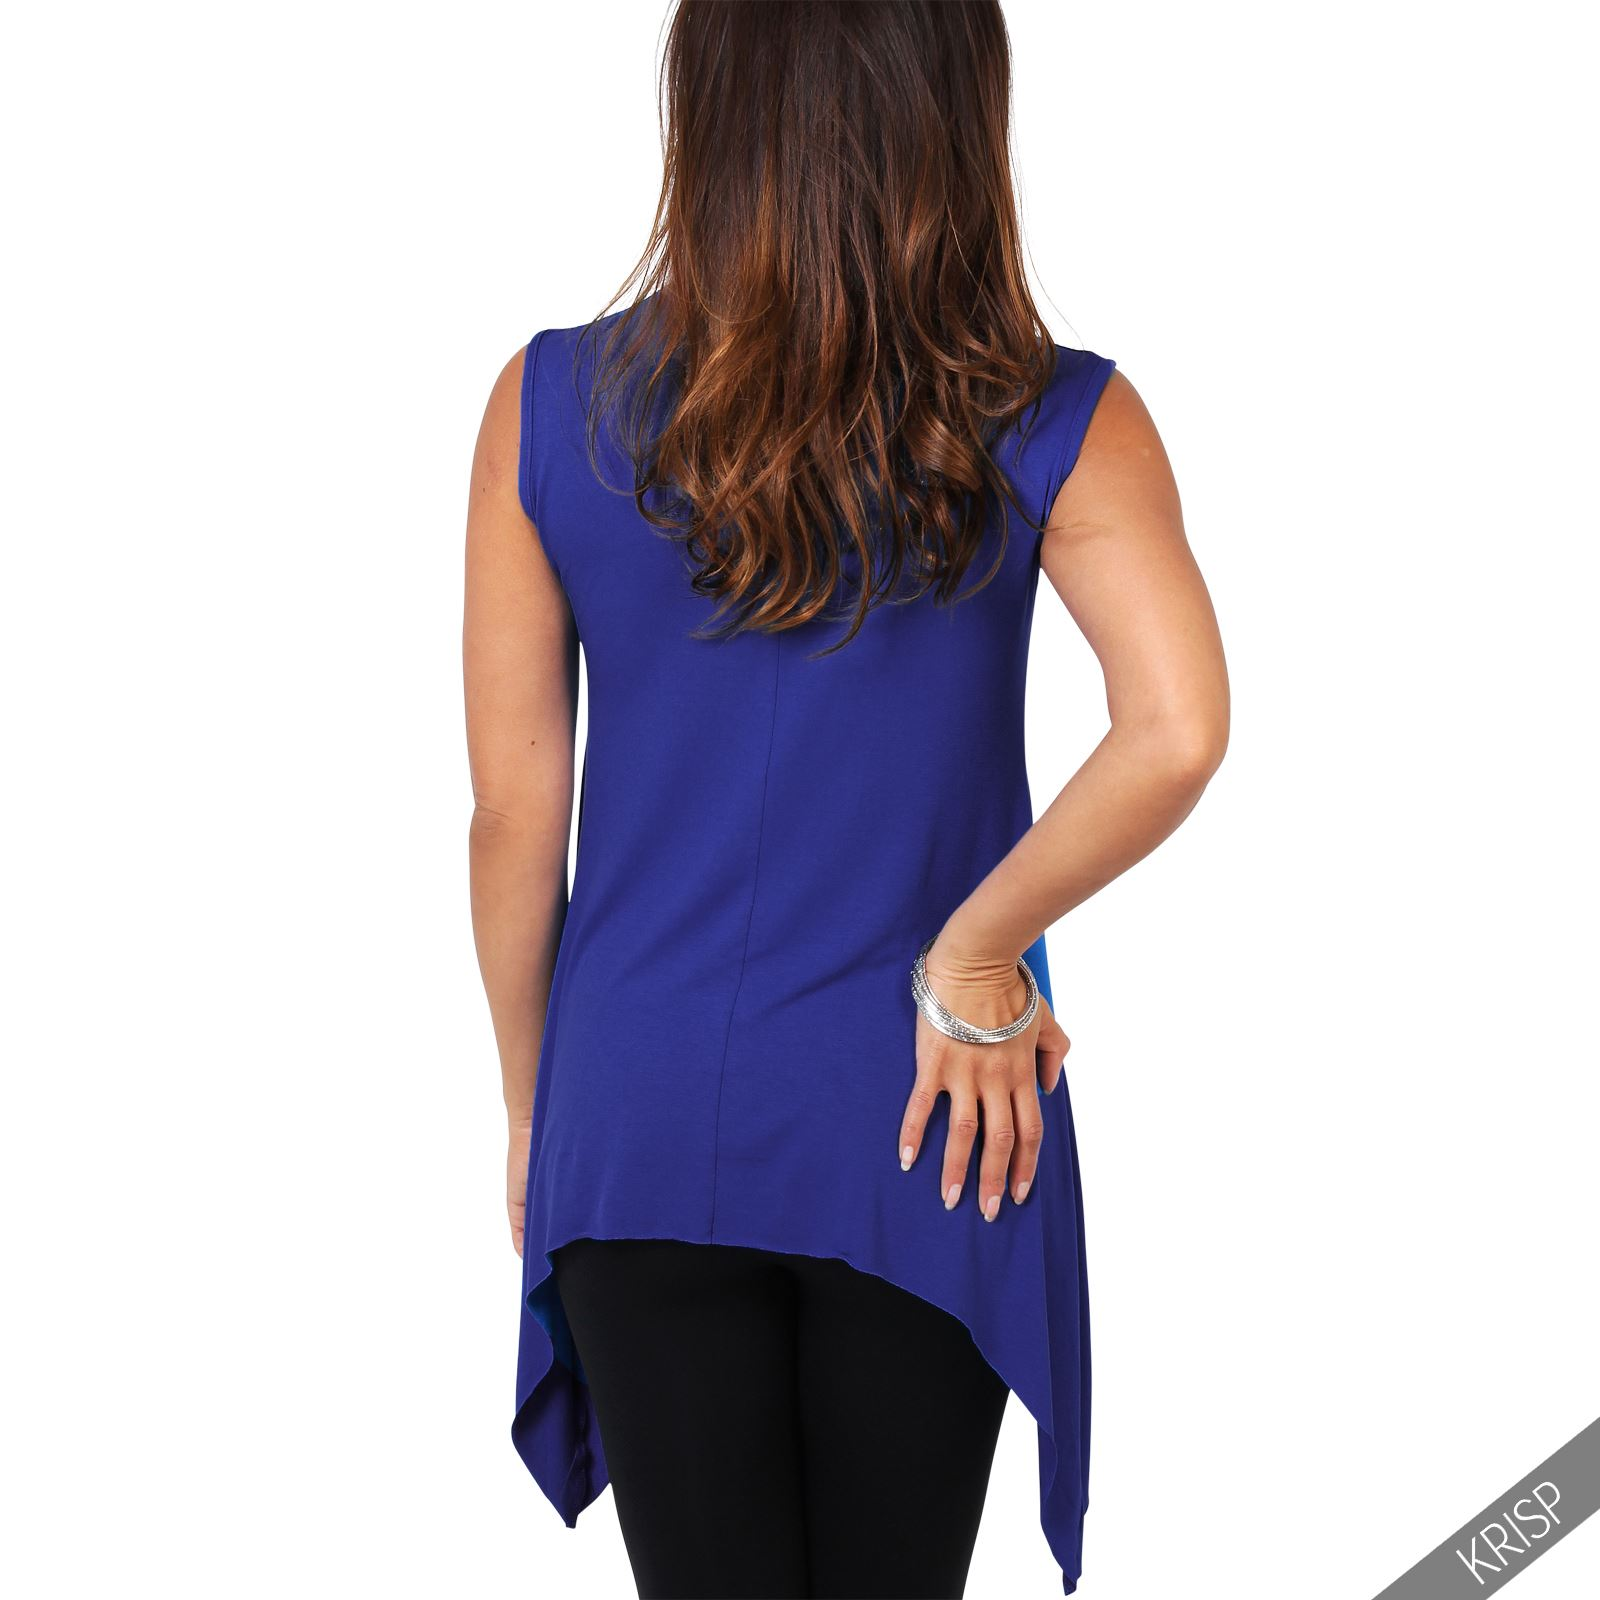 Women-Long-Top-Sleeveless-Pleated-Tee-Shirt-Tunic-Jersey-Stretch-Loose-Fit thumbnail 27